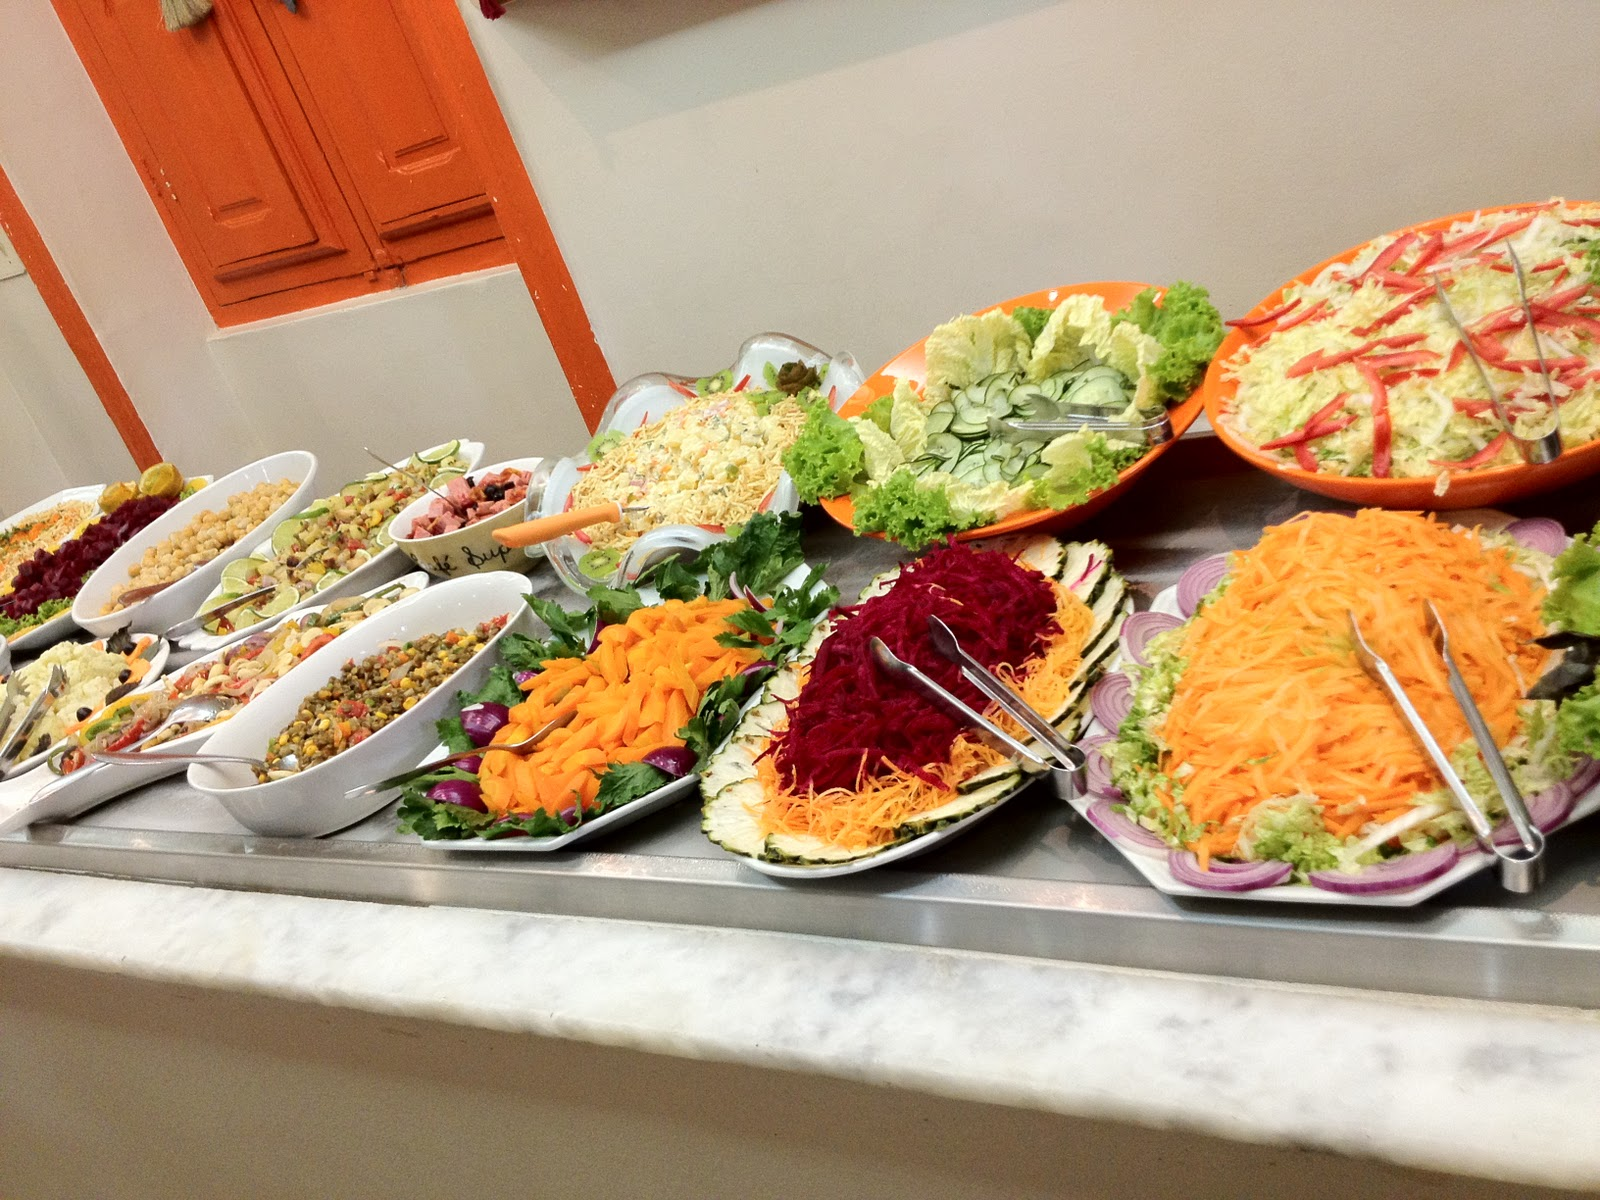 SaladBar Chefs Table Catering Catering In Philadelphia PA - The chef's table catering